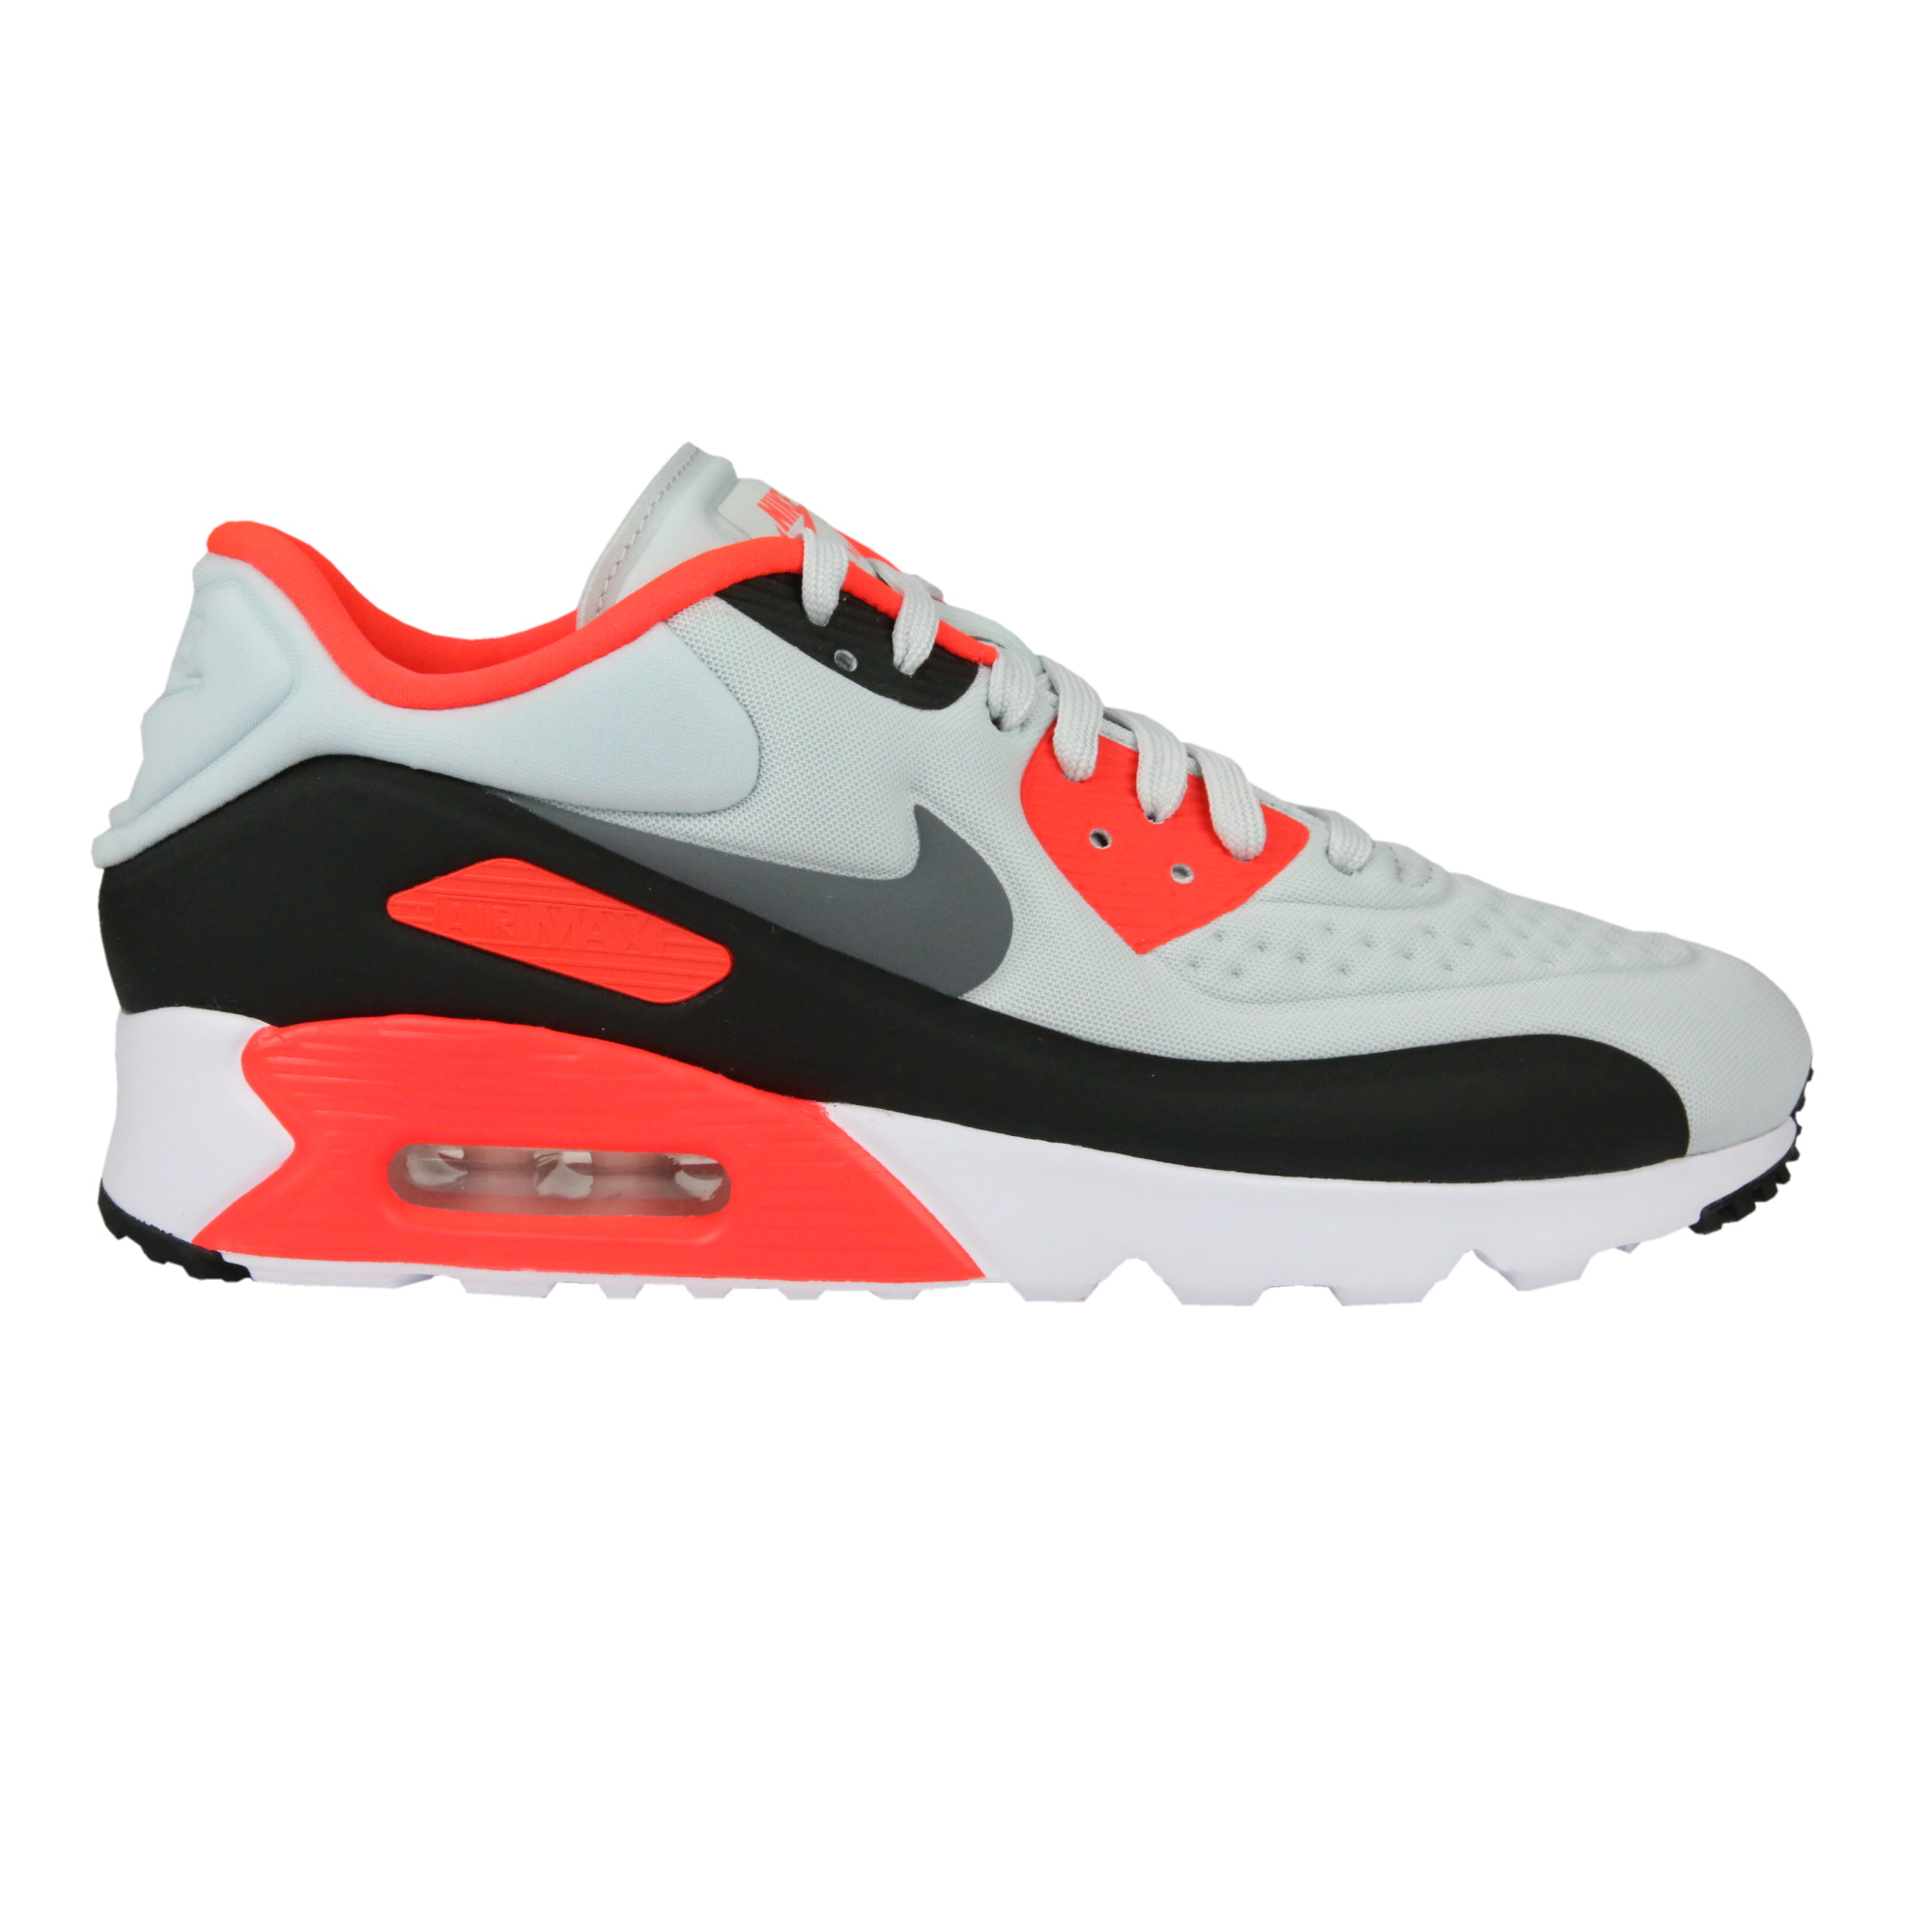 nike air max 90 ultra essential schuhe turnschuhe sneaker. Black Bedroom Furniture Sets. Home Design Ideas